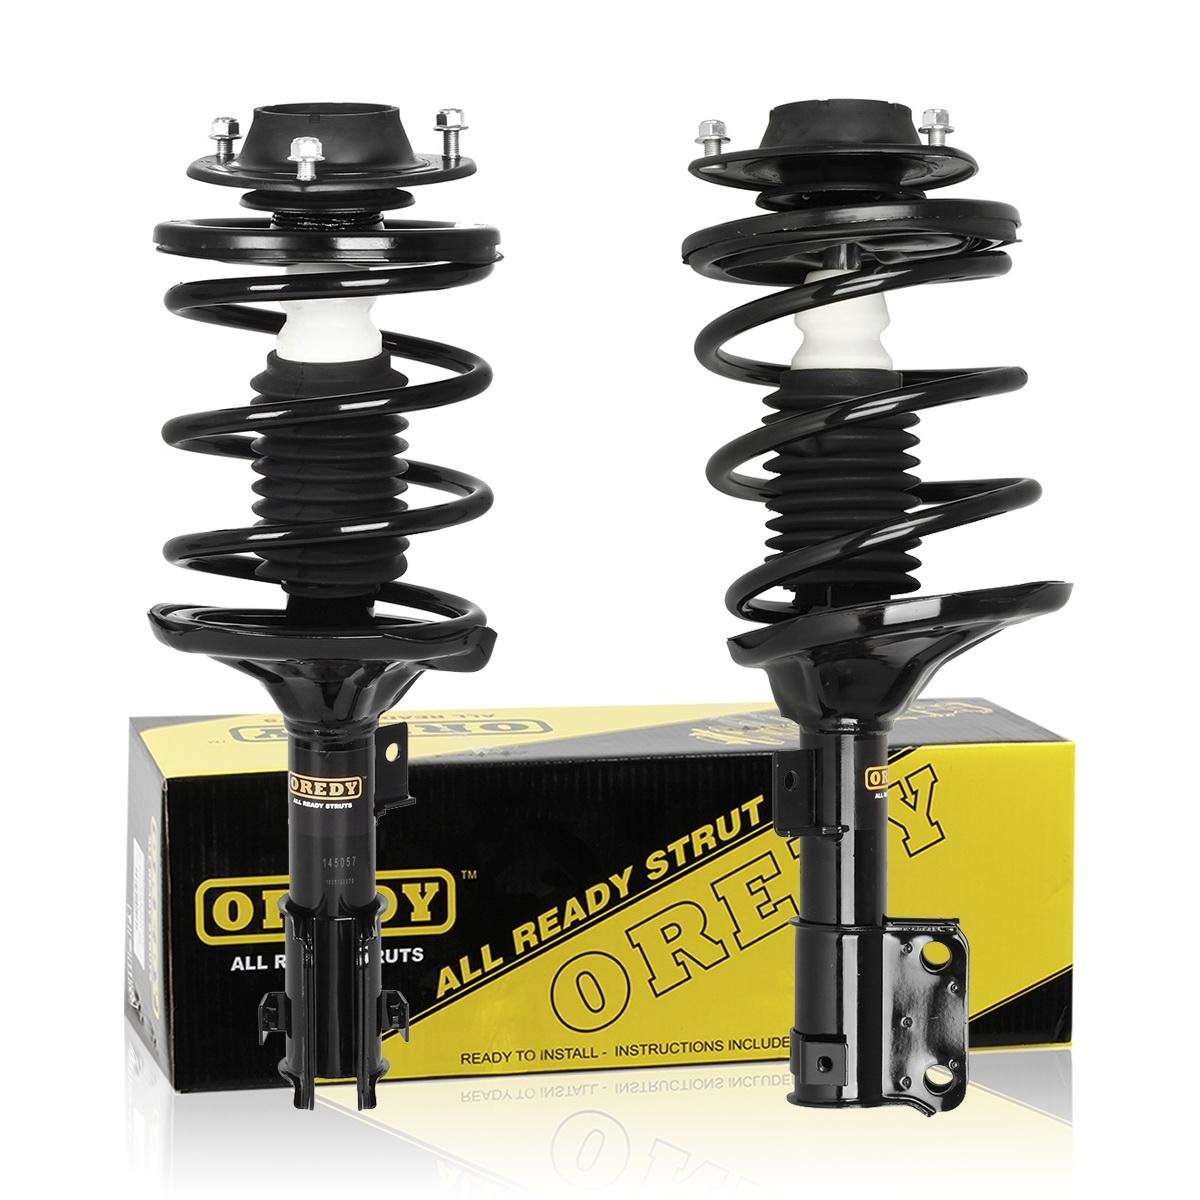 OREDY Front Left /& Right Complete Struts Assembly Shocks Absorber Coil Spring Assembly Kit XS857141122 XS857141021 11191 11192 Fits for 2001 2002 2003 2004 2005 Dodge Stratus /& Chrysler Sebring